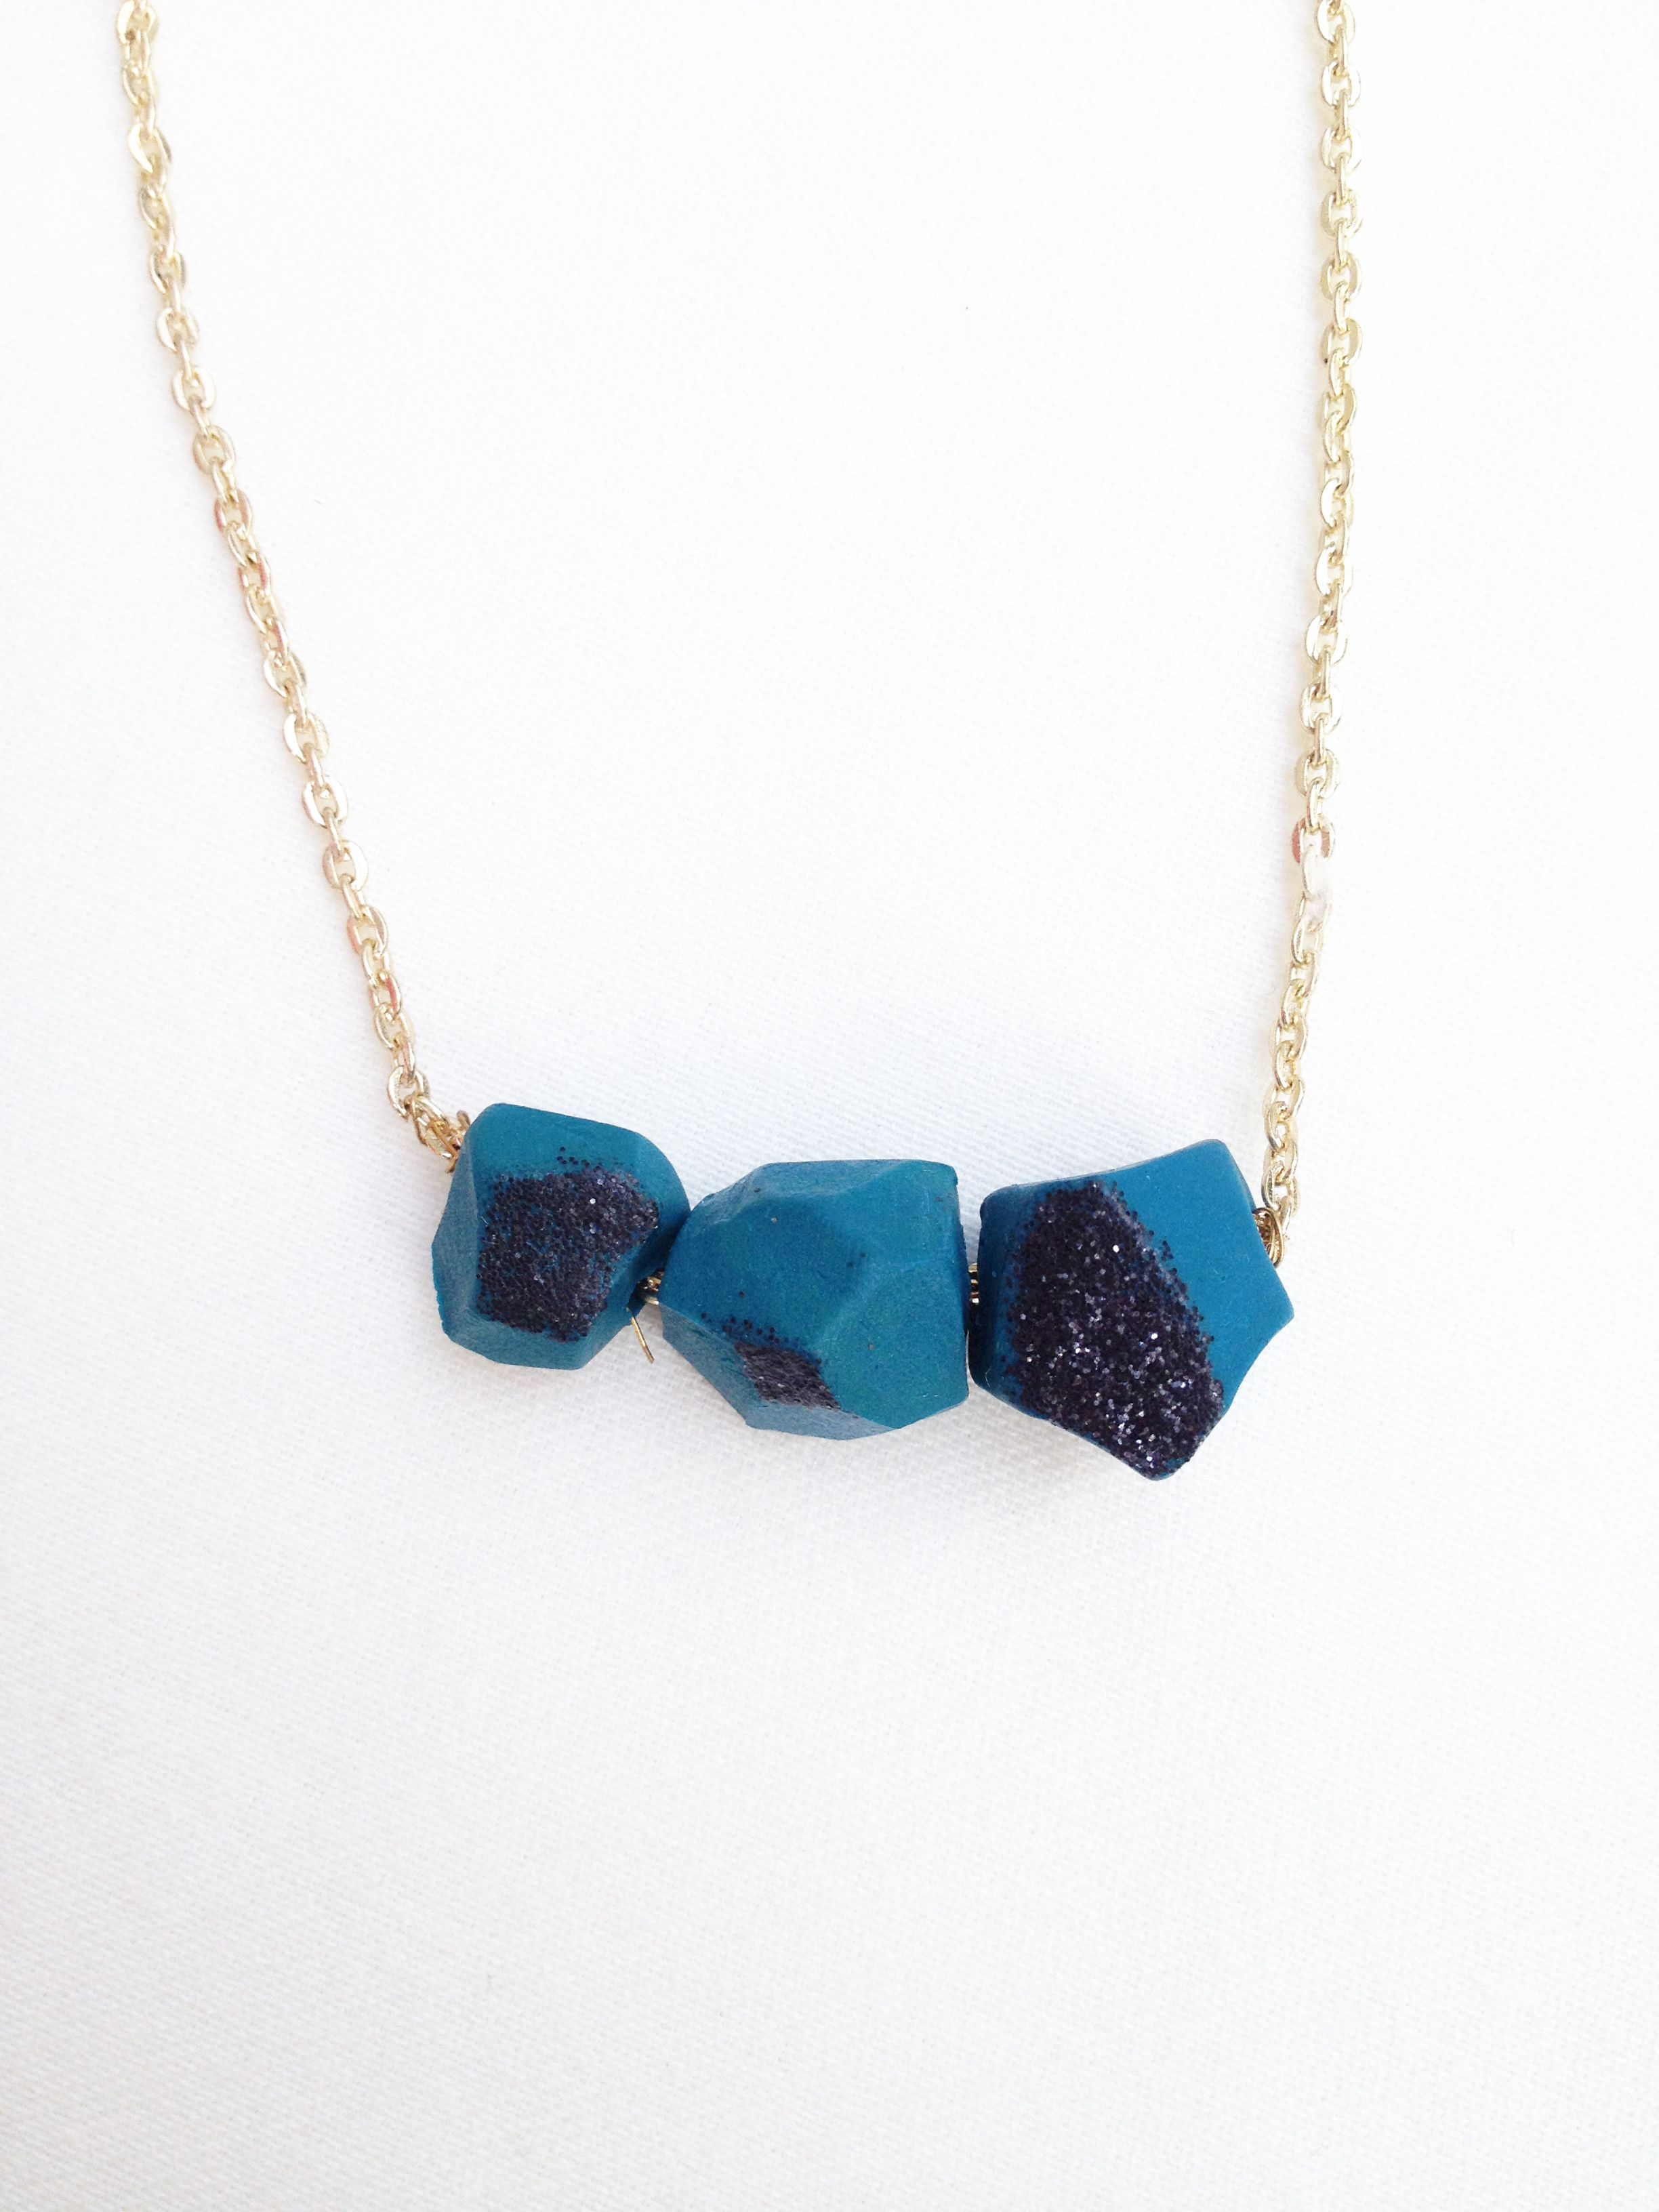 Teal & Black Glitter Polymer Clay Geometric Necklace